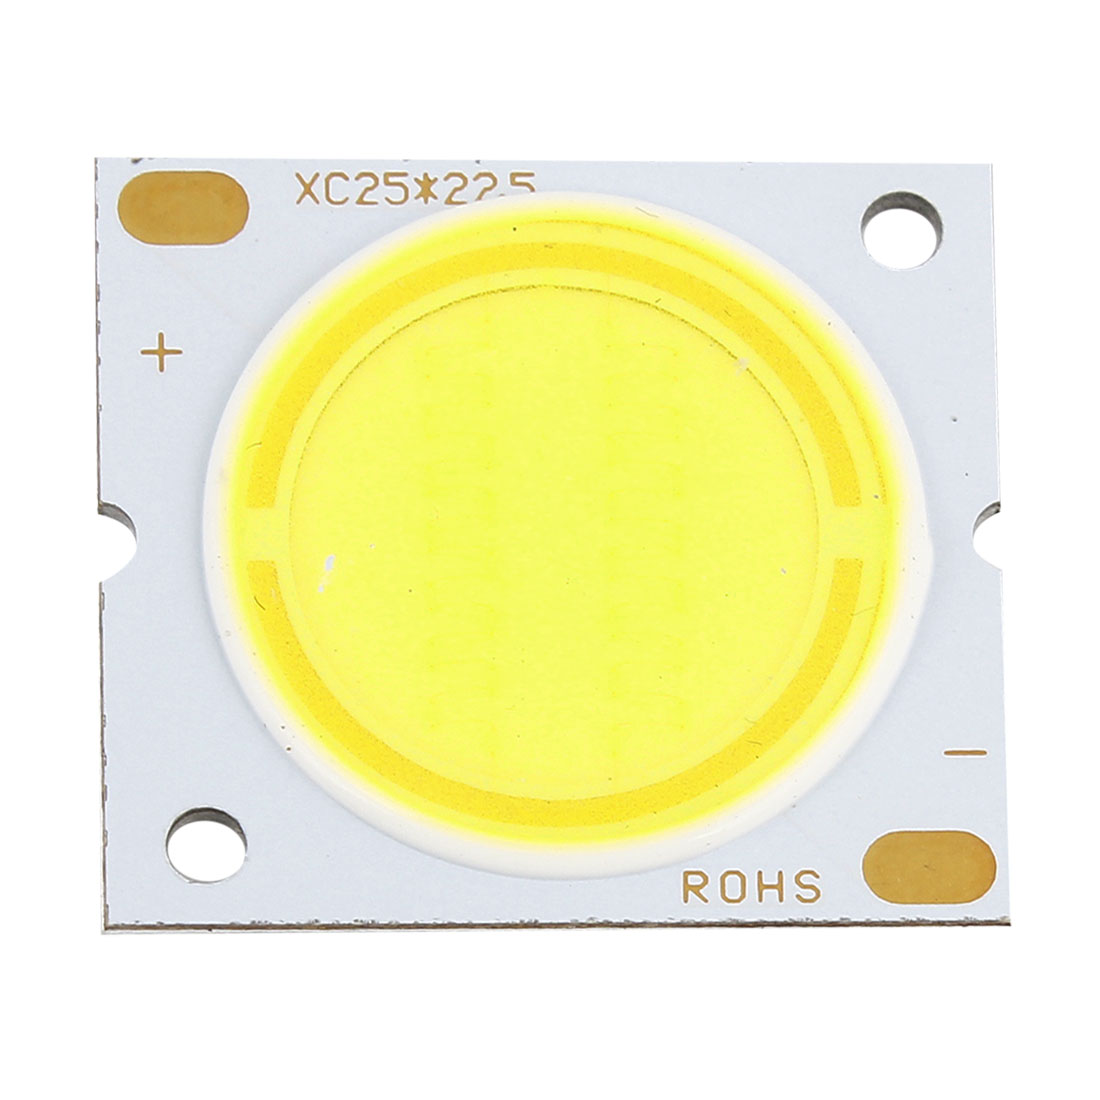 15W Pure White Light High Power SMD COB LED Lamp Chip Bulb Emitter 1500LM